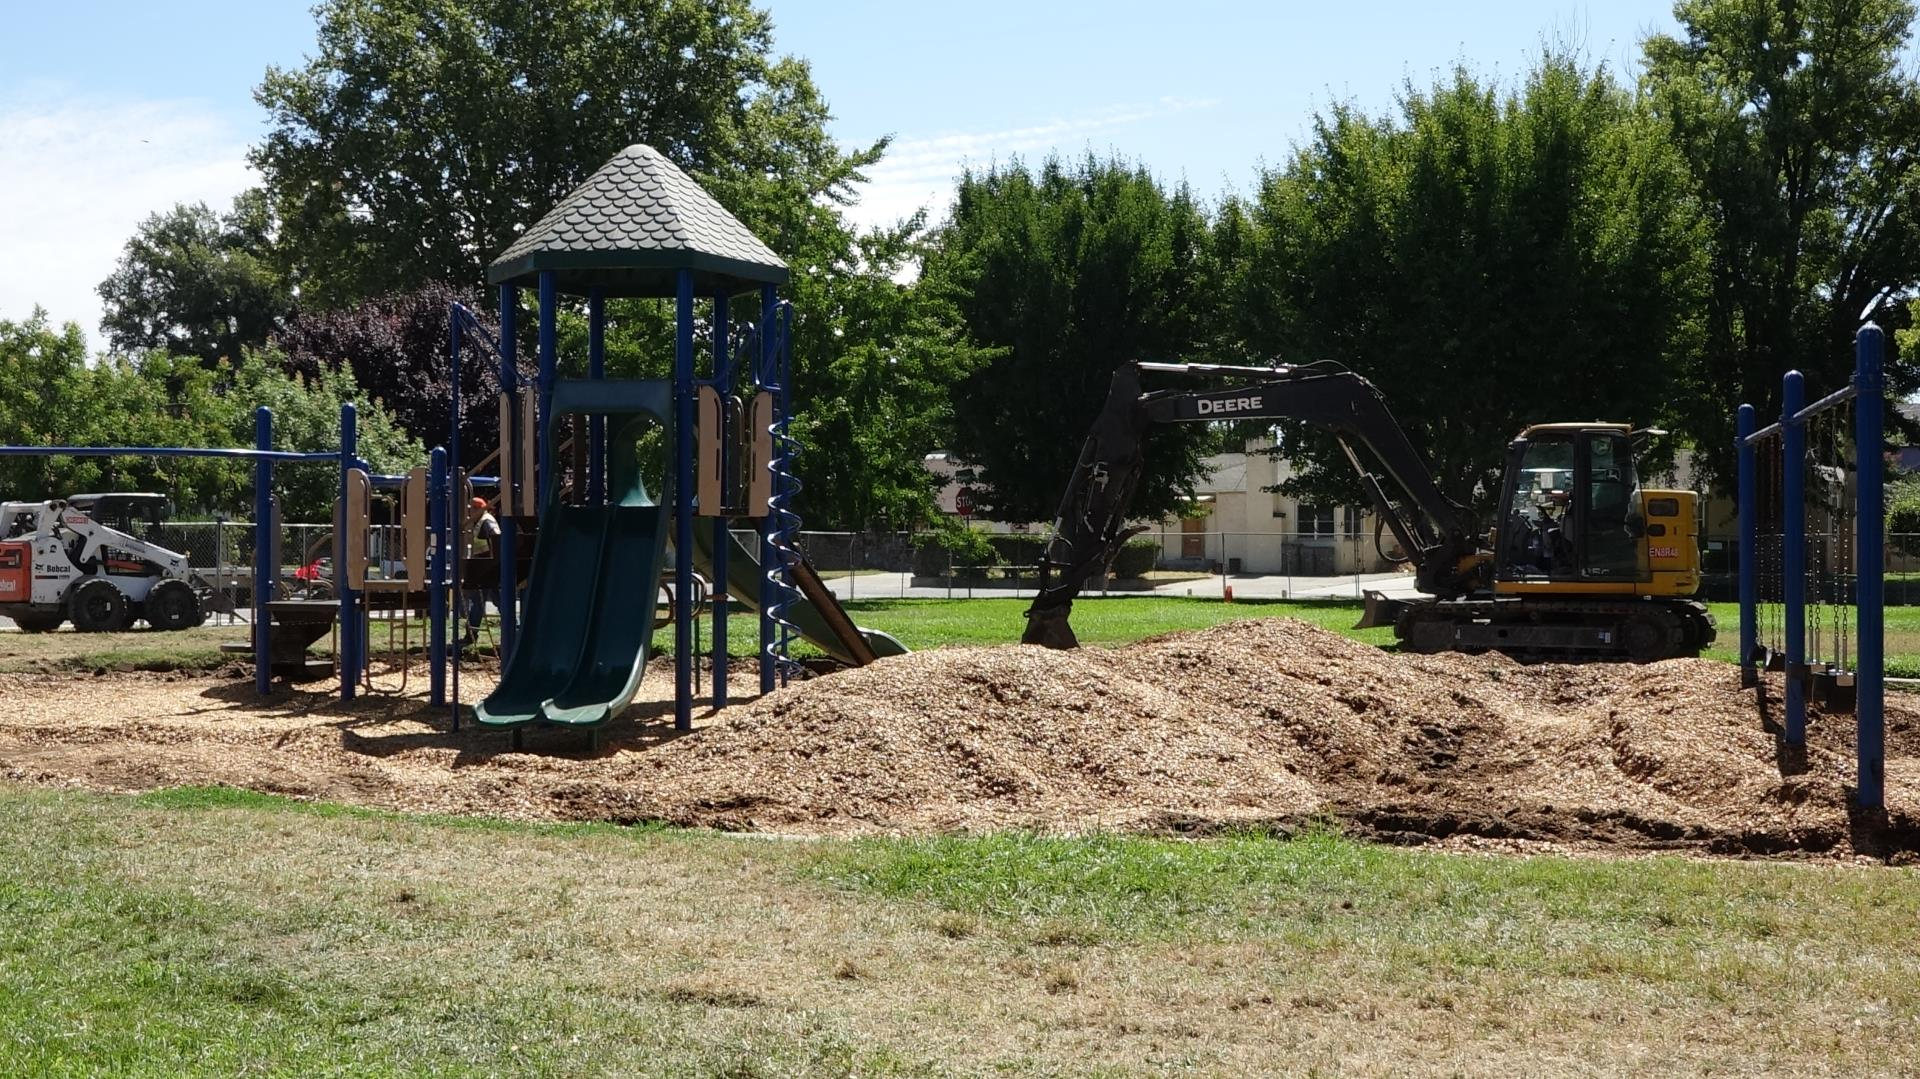 Memorial Park under rehabilitation with giant holes in the woodchips and a digger behind the park